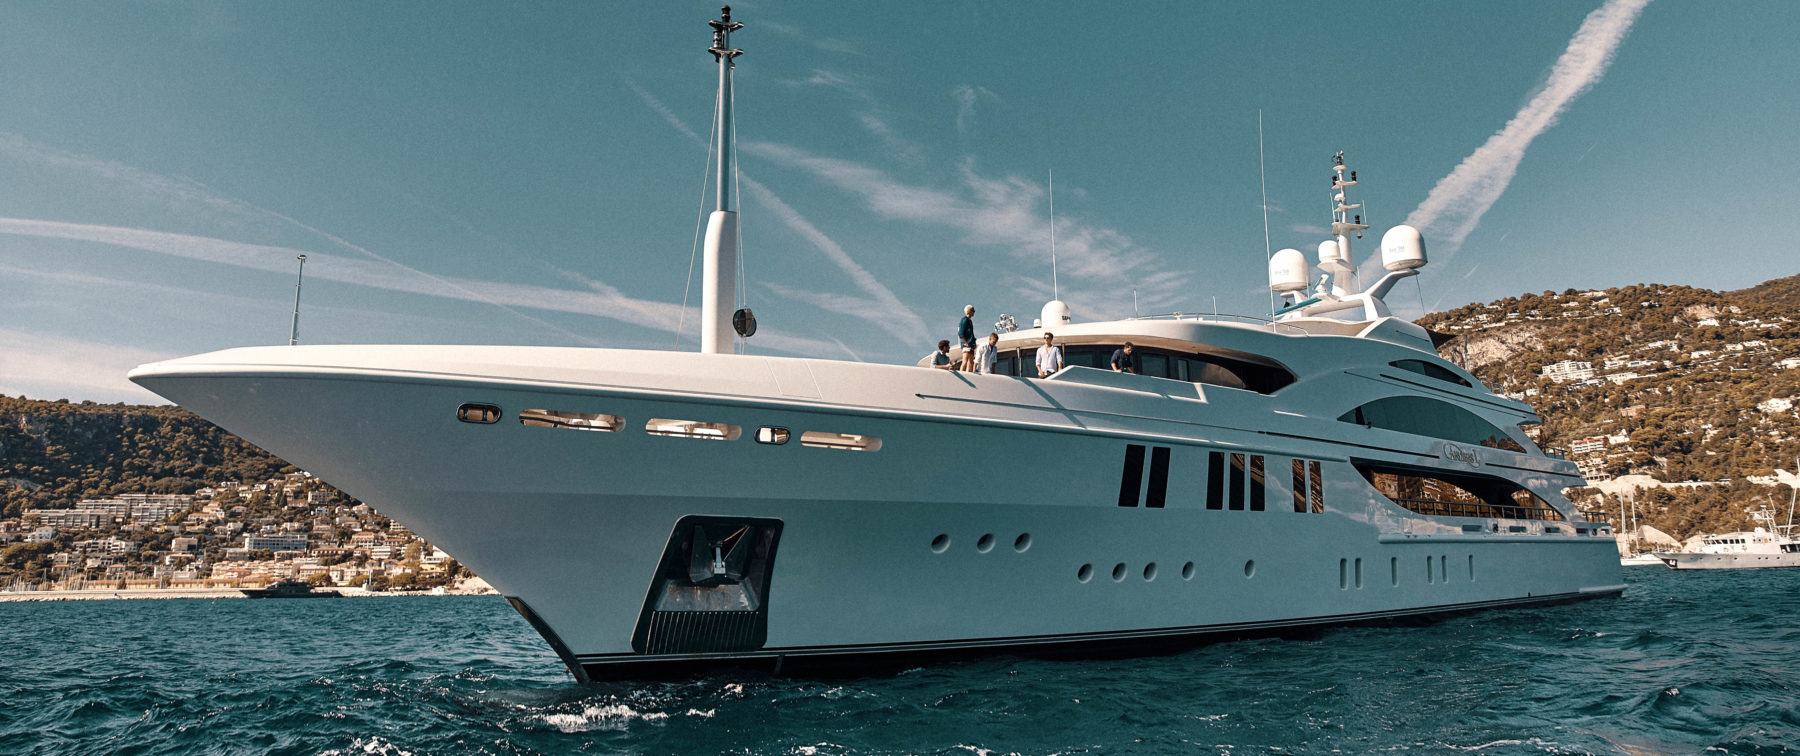 andreas l superyacht